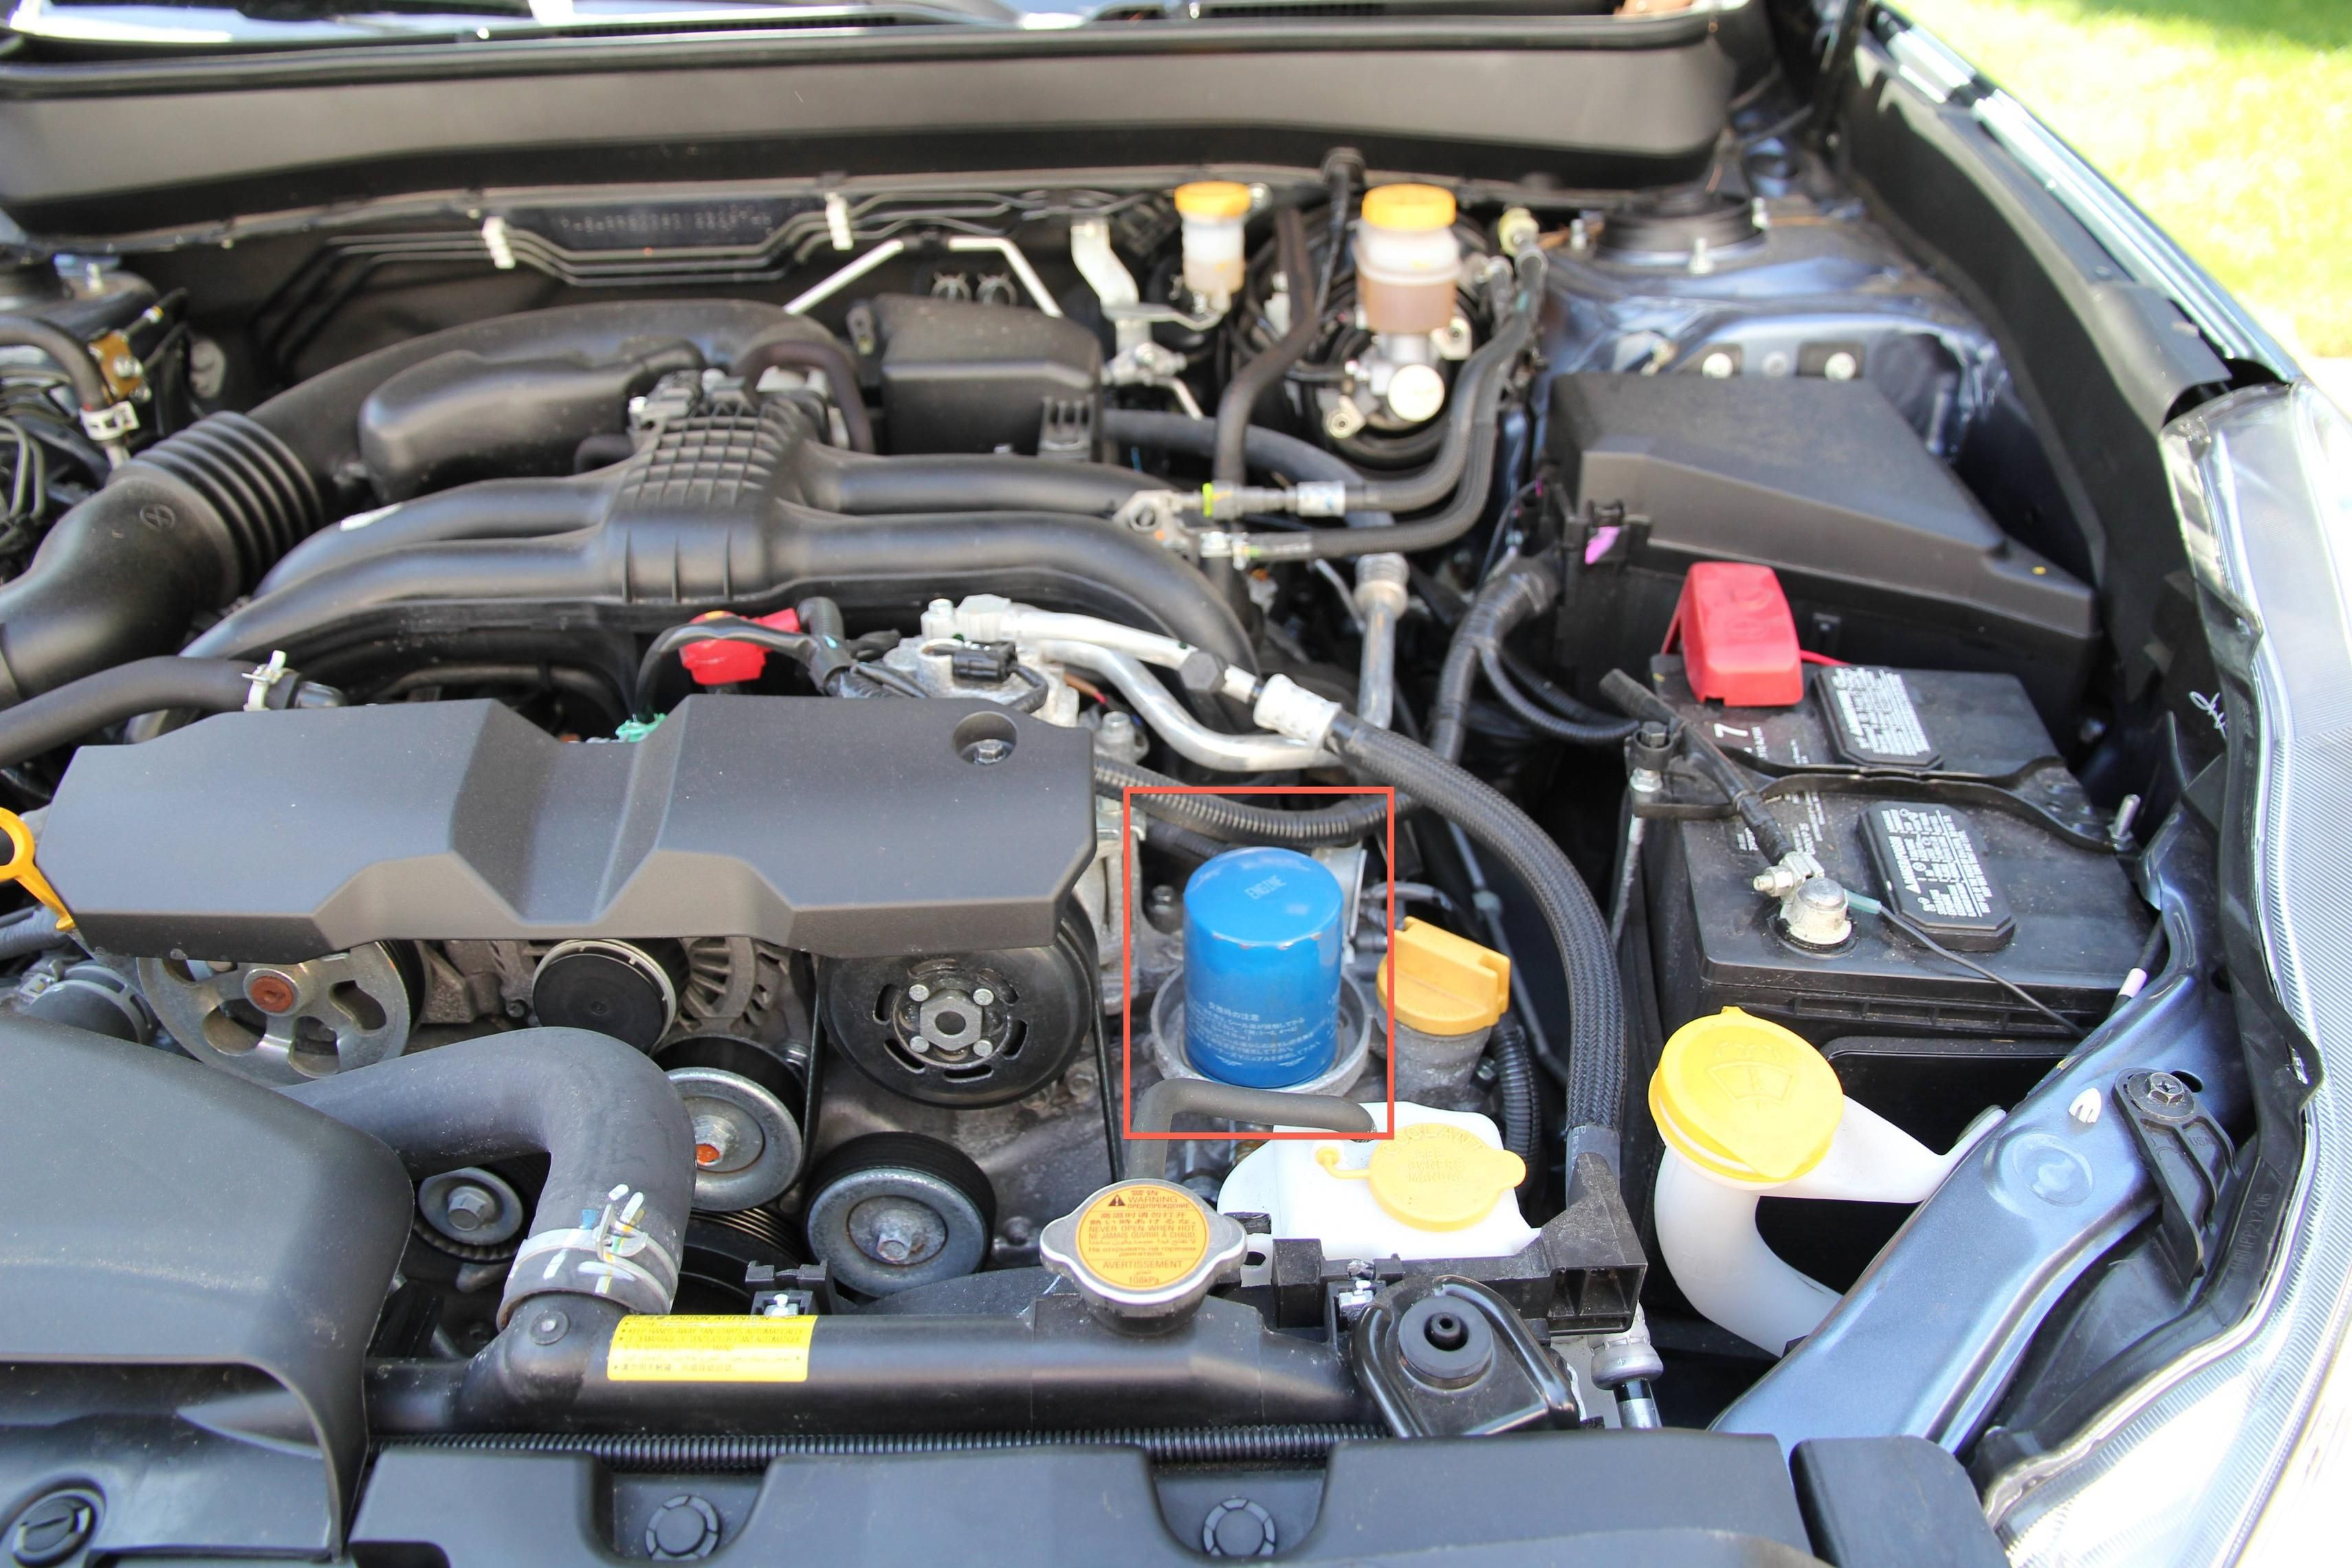 How to change the oil and filter on a Gen 4, B series, 2.5 liter subaru  outback